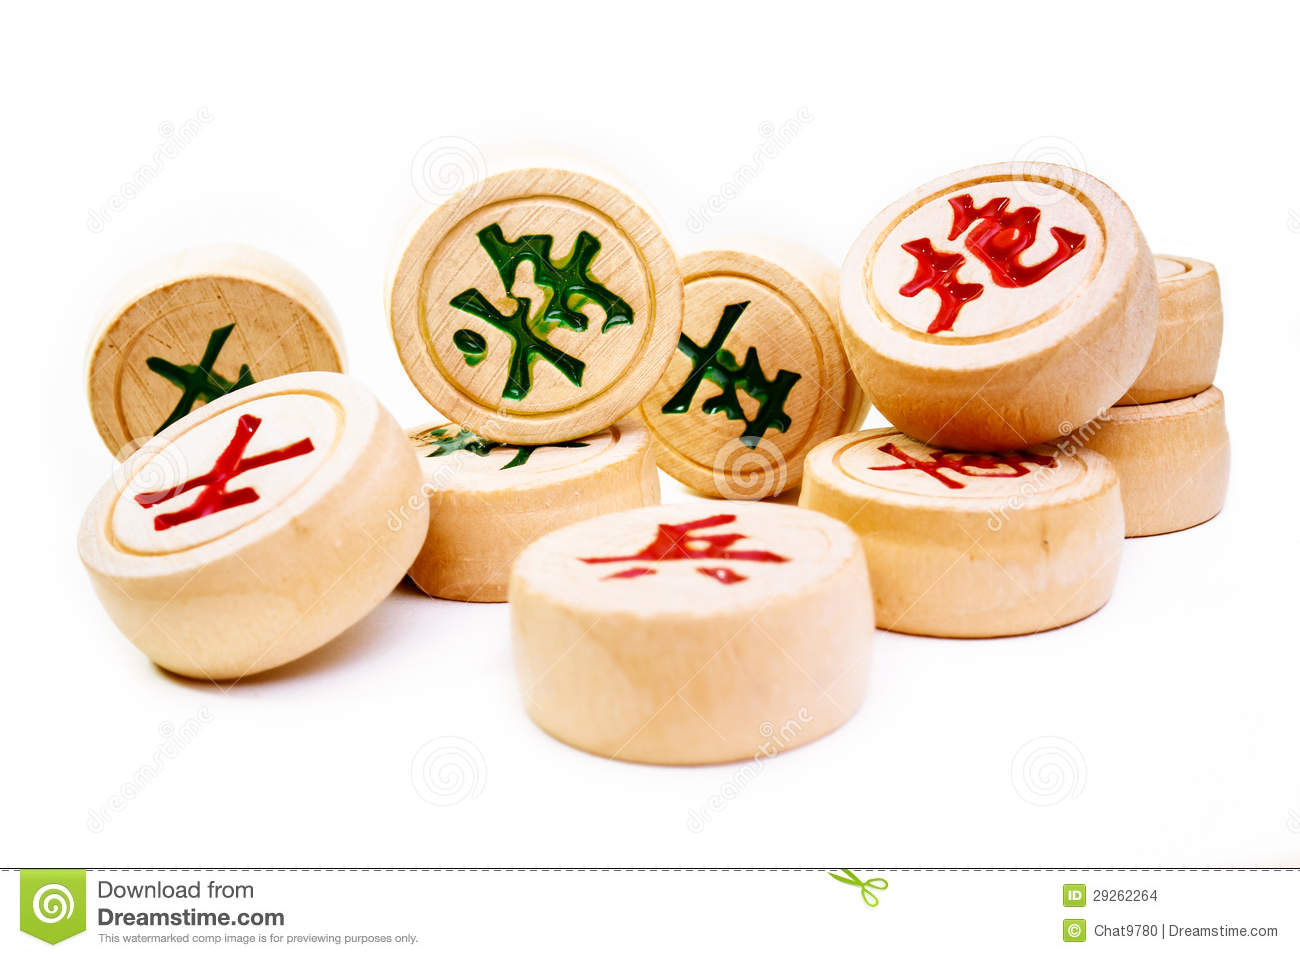 Fotos De Stock Chat9780: Xiangqi, Chinese Chess Stock Images